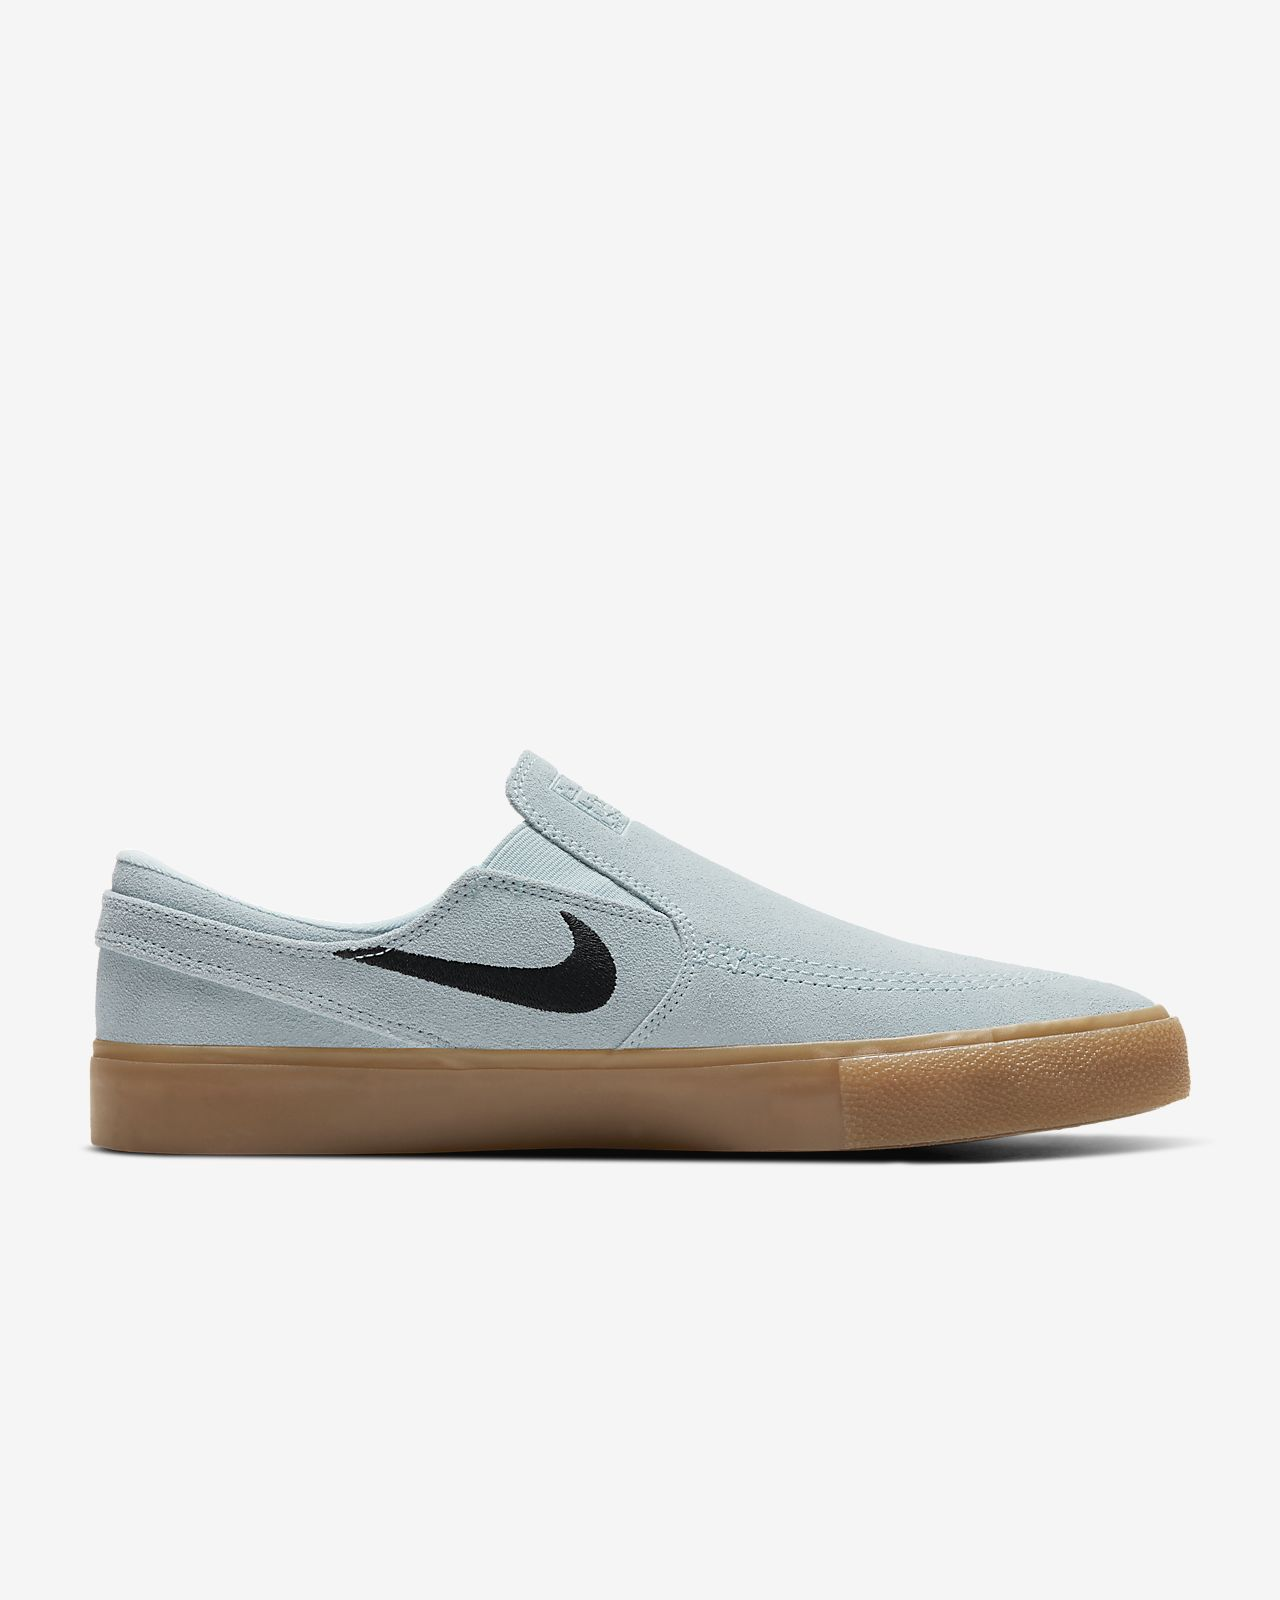 Our First Look At The Nike SB Stefan Janoski Slip On